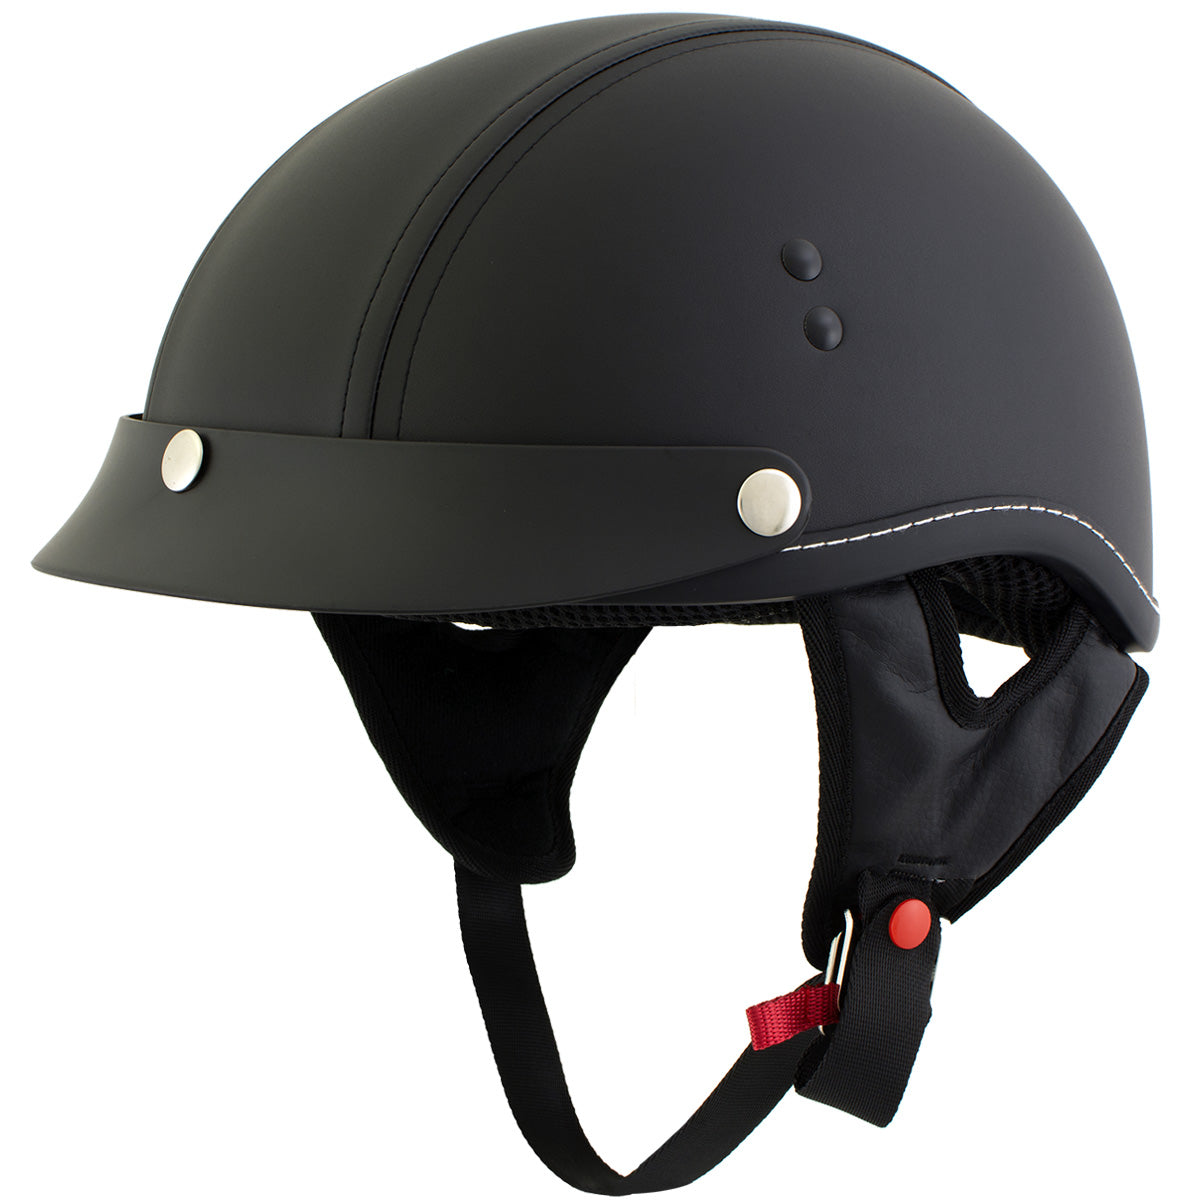 Outlaw T70 'Dark Rider' Black Leather Like Half Helmet with Snap Visor